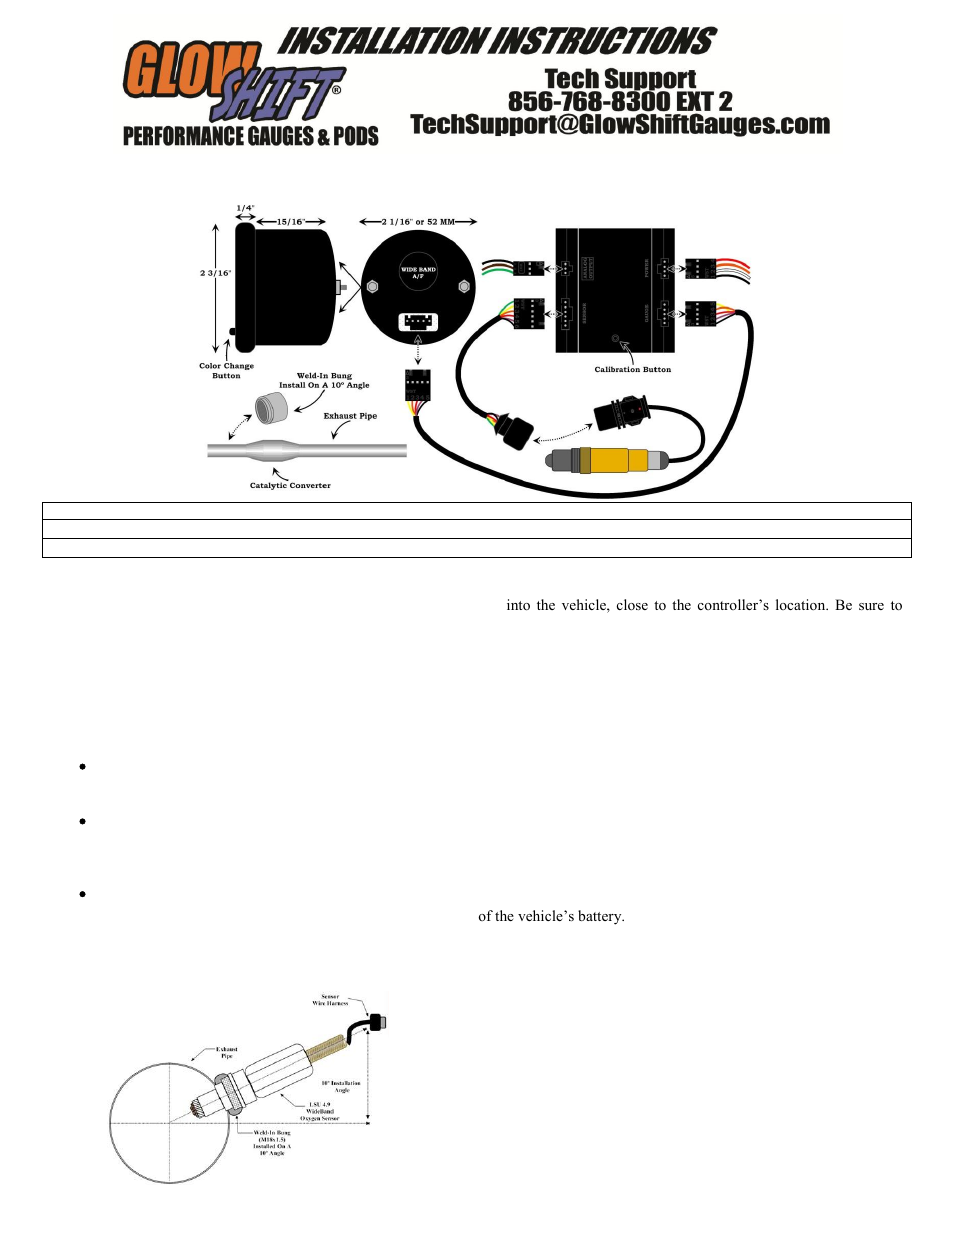 glowshift elite 10 color series wideband air_fuel ratio gauge page1 glowshift elite 10 color series wideband air_fuel ratio gauge user innovate air fuel ratio gauge wiring at gsmportal.co